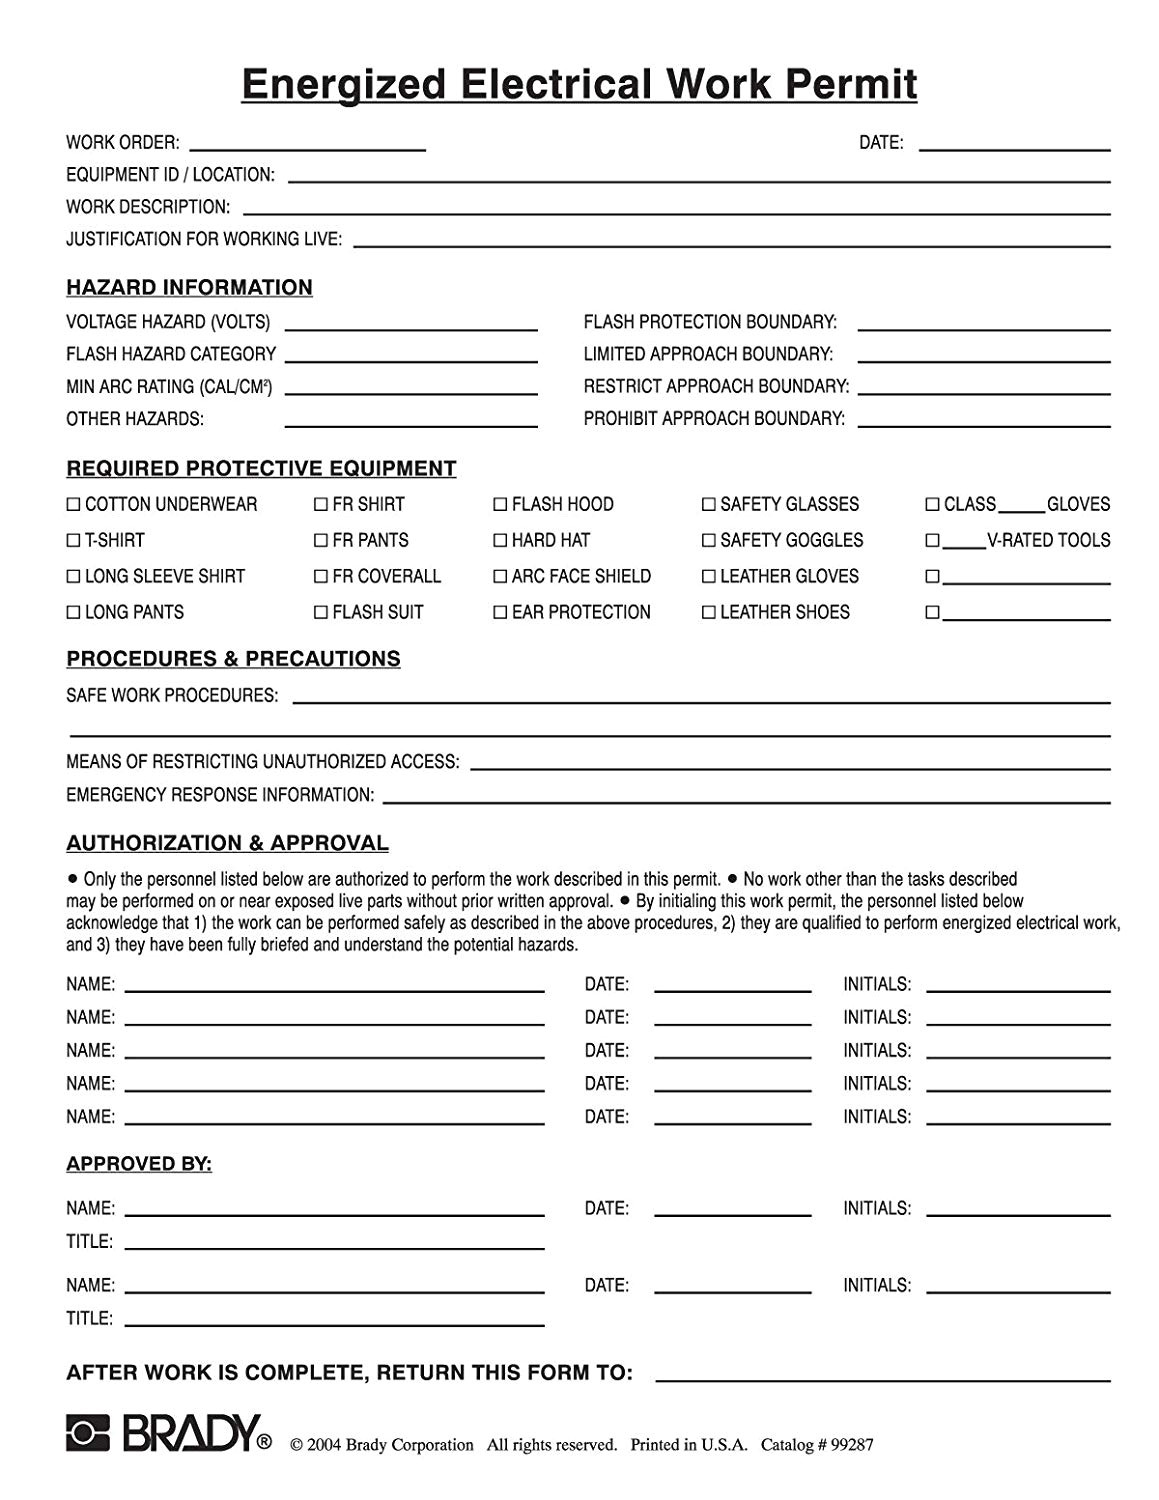 nfpa 70e energized electrical work permit form